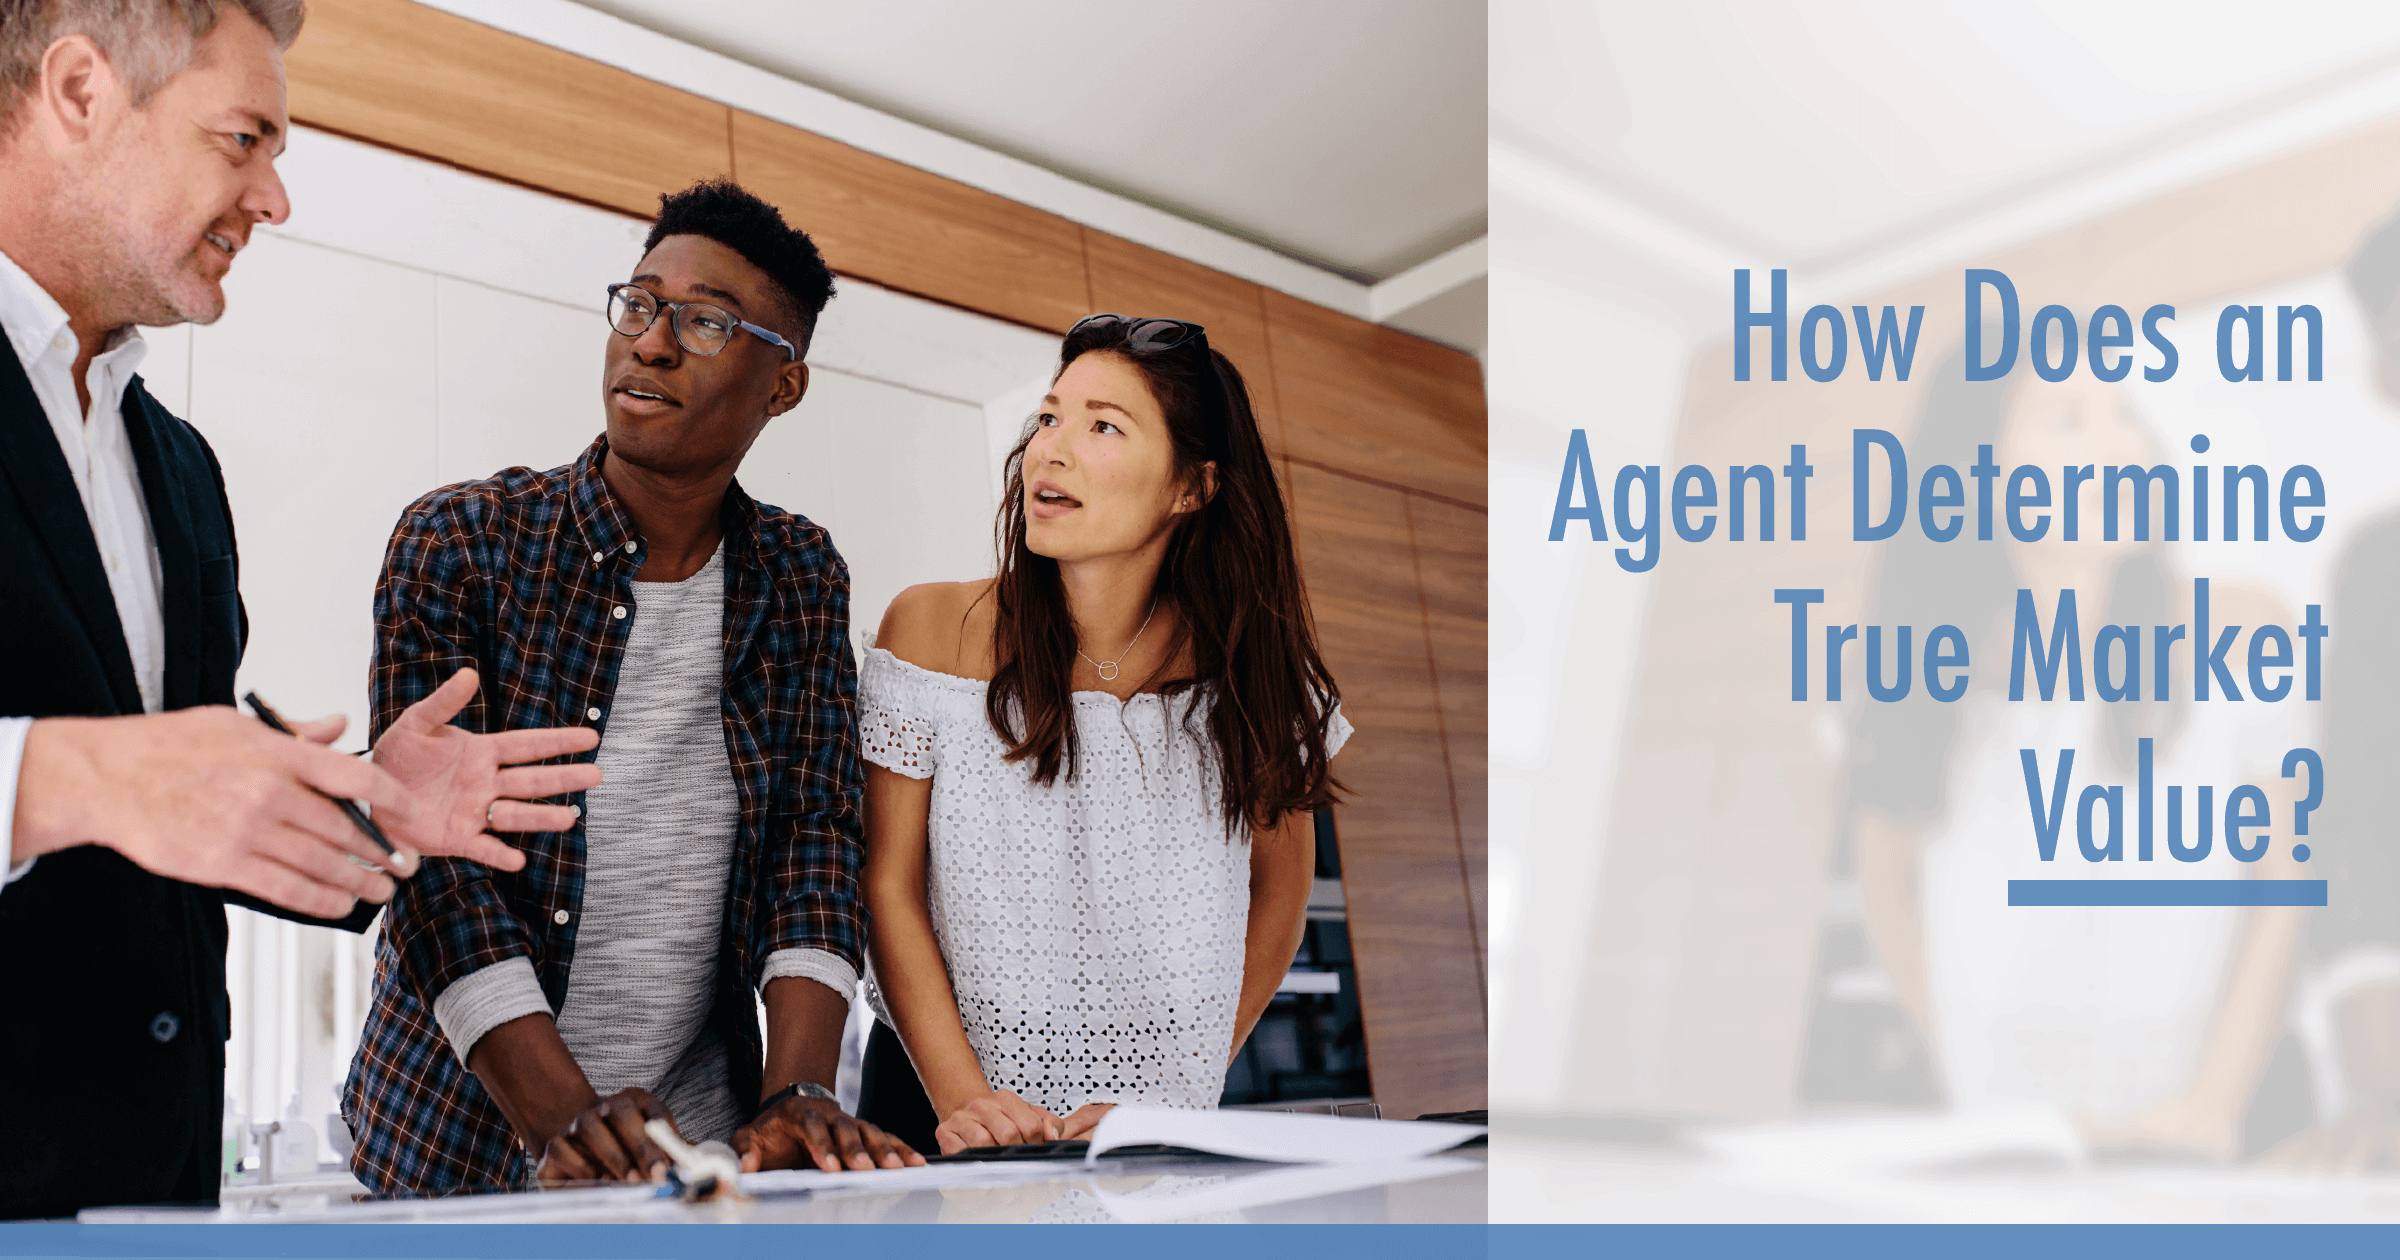 How Does an Agent Determine True Market Value?